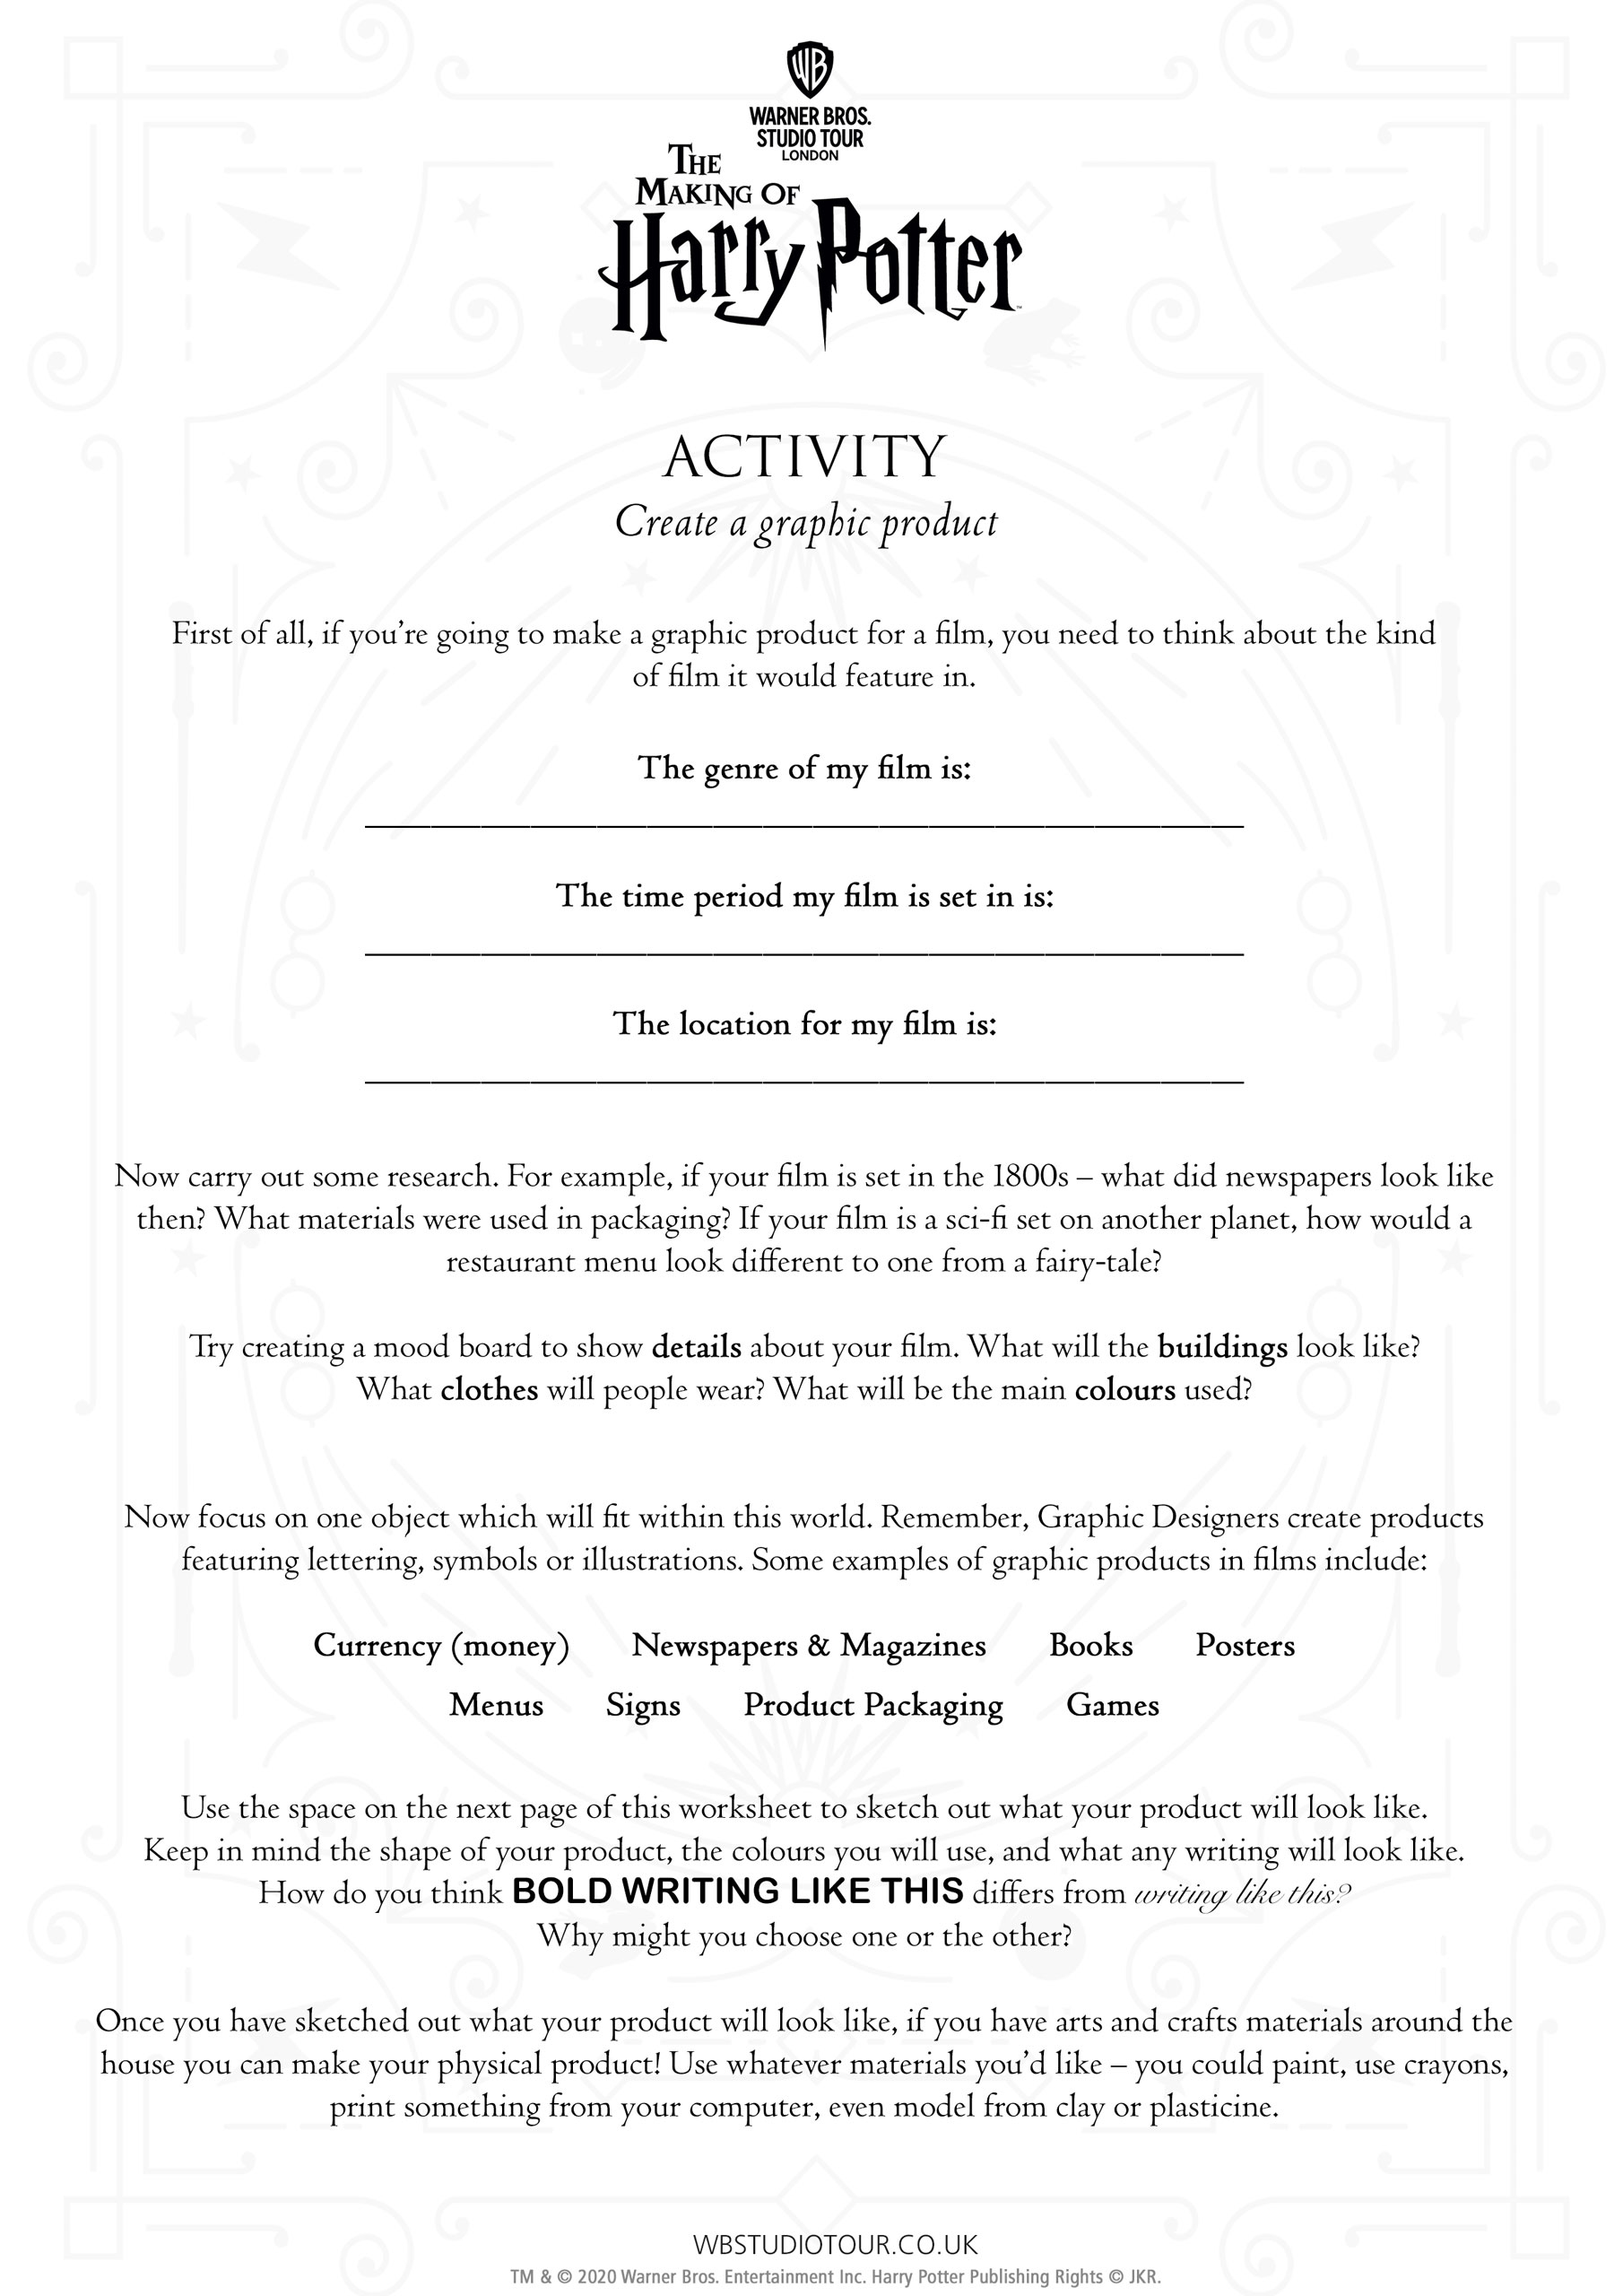 Graphic Design activity sheet page 2